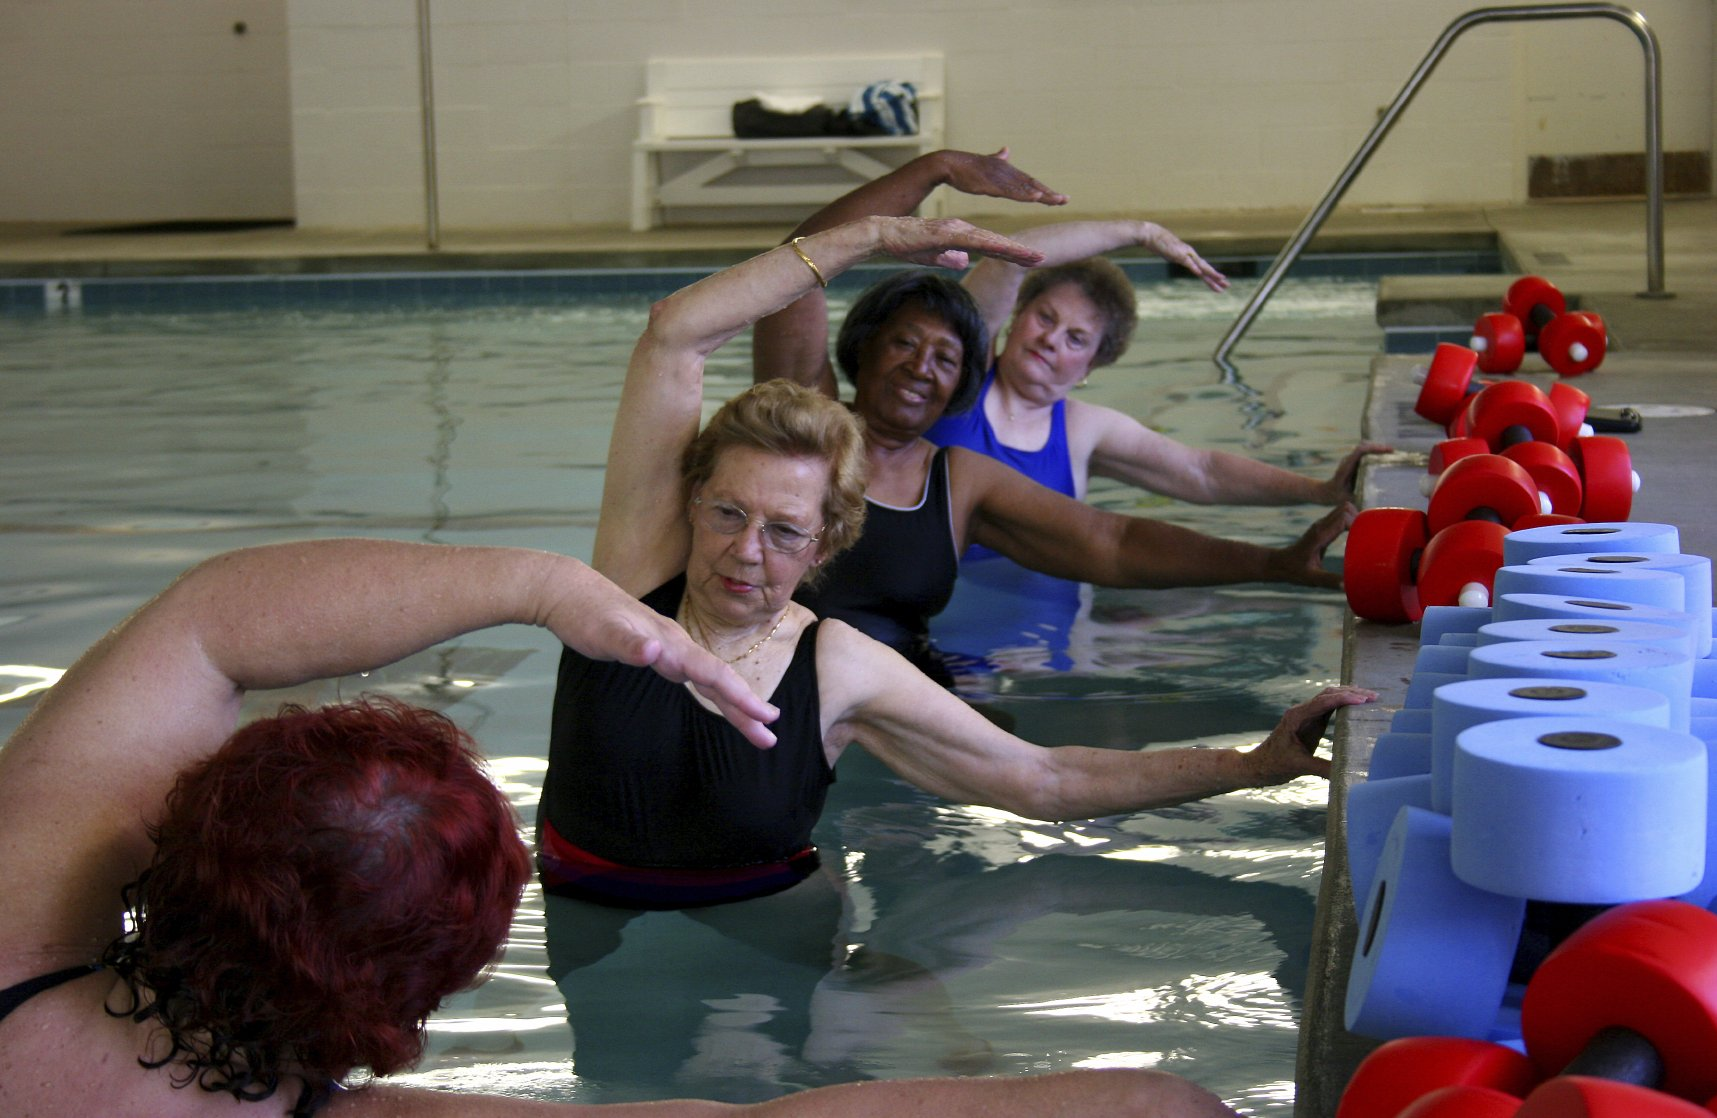 aqua aerobics classes are great for exercise